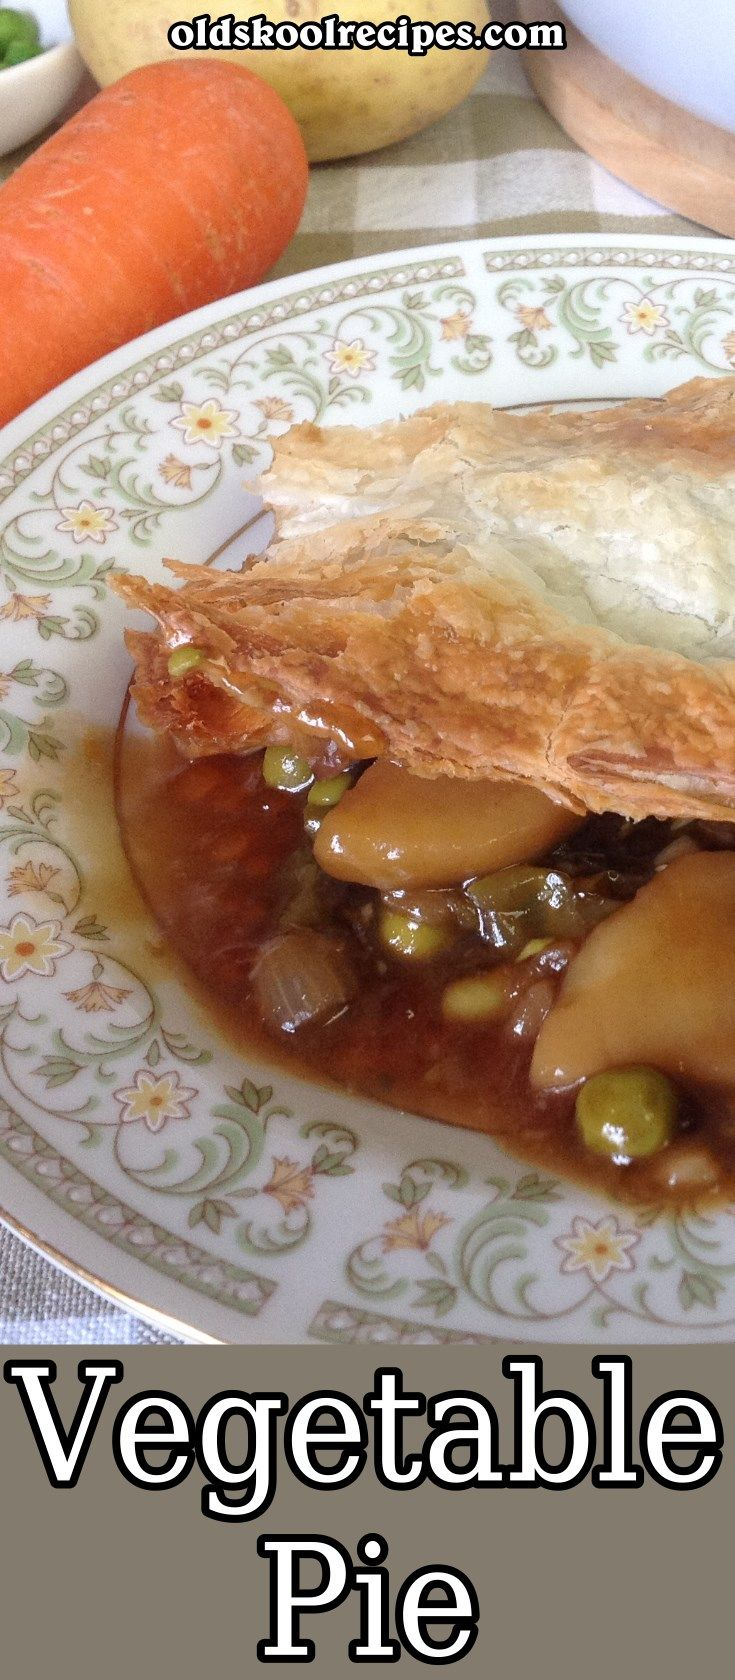 Vegan Vegetable Pie Recipe - Old Skool Recipes - This vegetable pie is a perfect winter warmer. It is filled with lots of yummy vegetable. So easy to make and simply delicious. It is completely Vegan too.